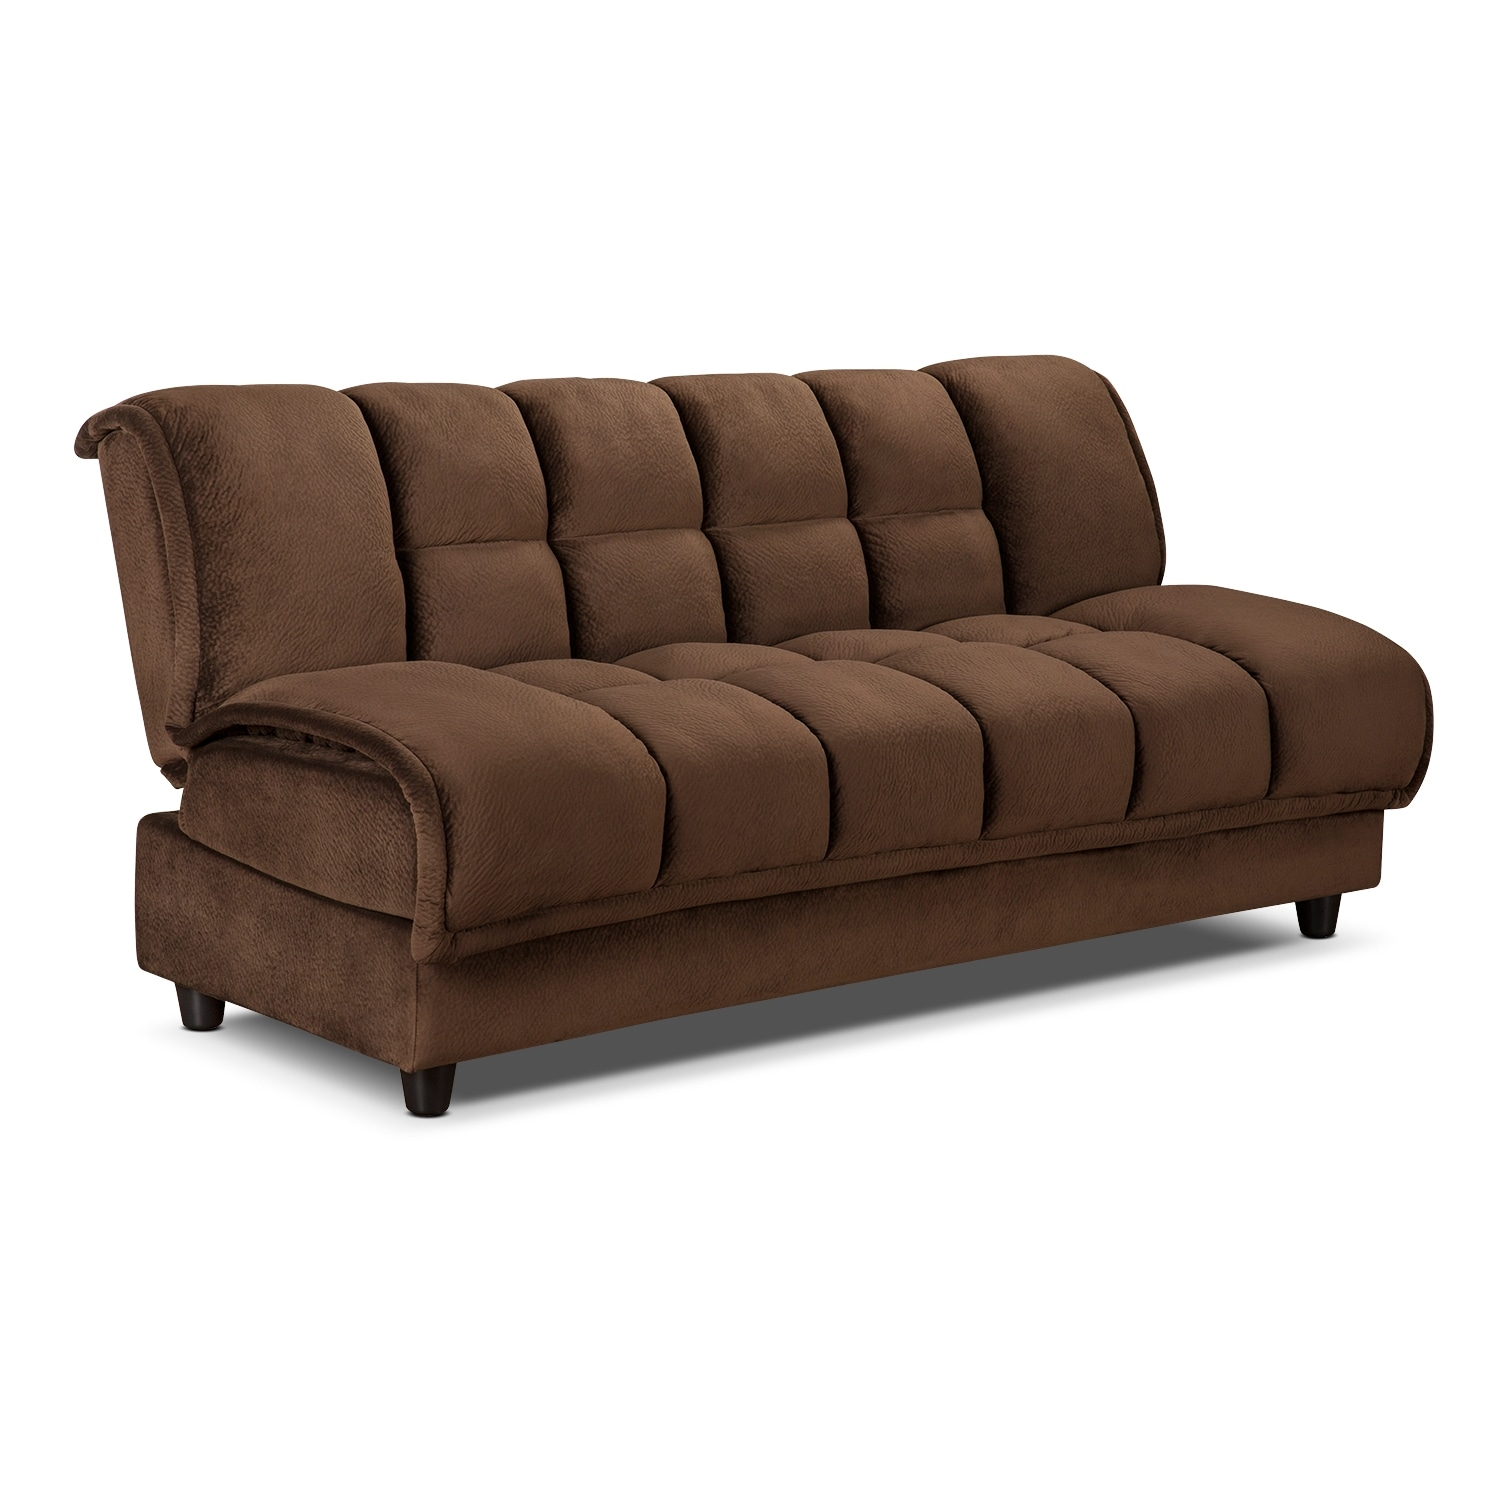 Bennett Futon Sofa Bed   Espresso Part 75